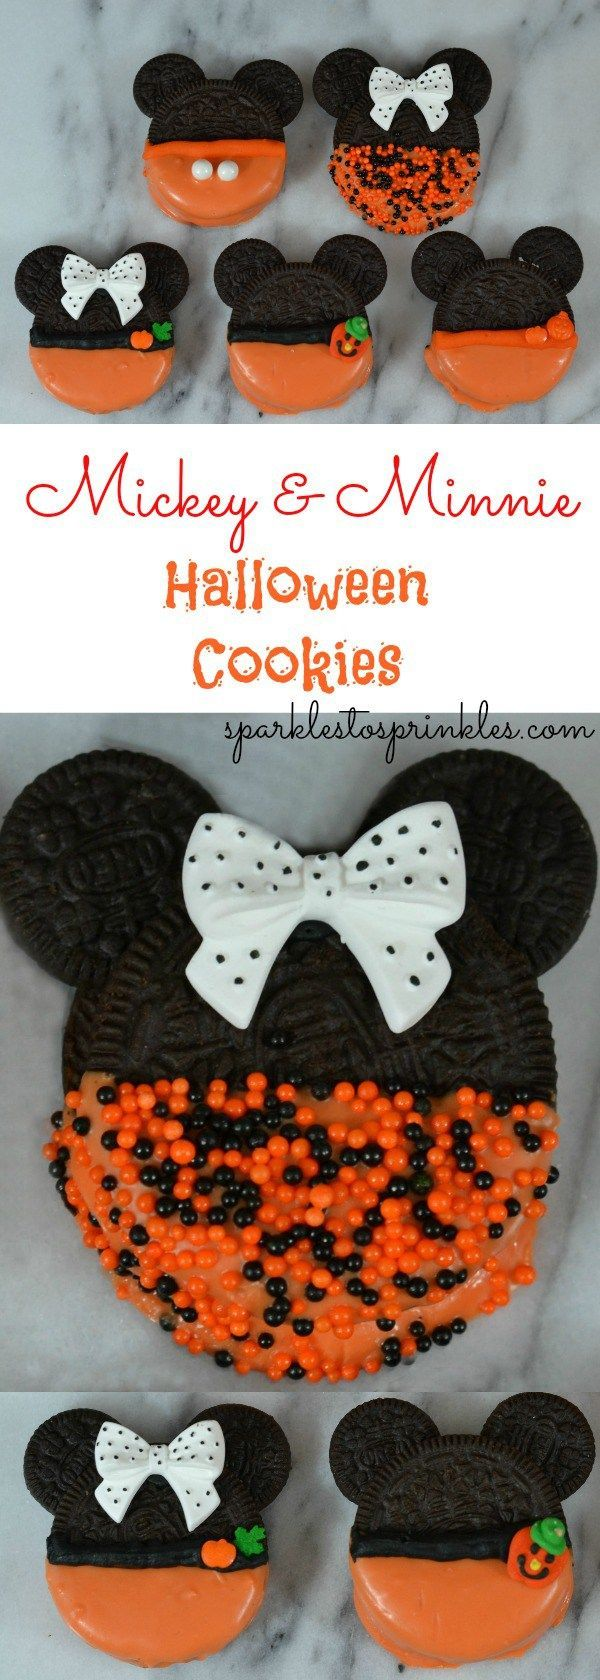 If you are like me, you have seen and have fallen in love with Living Locurto's Mickey & Minnie Mouse Christmas Cookies. They have to be the most adorable Mickey & Minnie creation ever! You can clearly see that my Mickey & Minnie Halloween Cookies are a